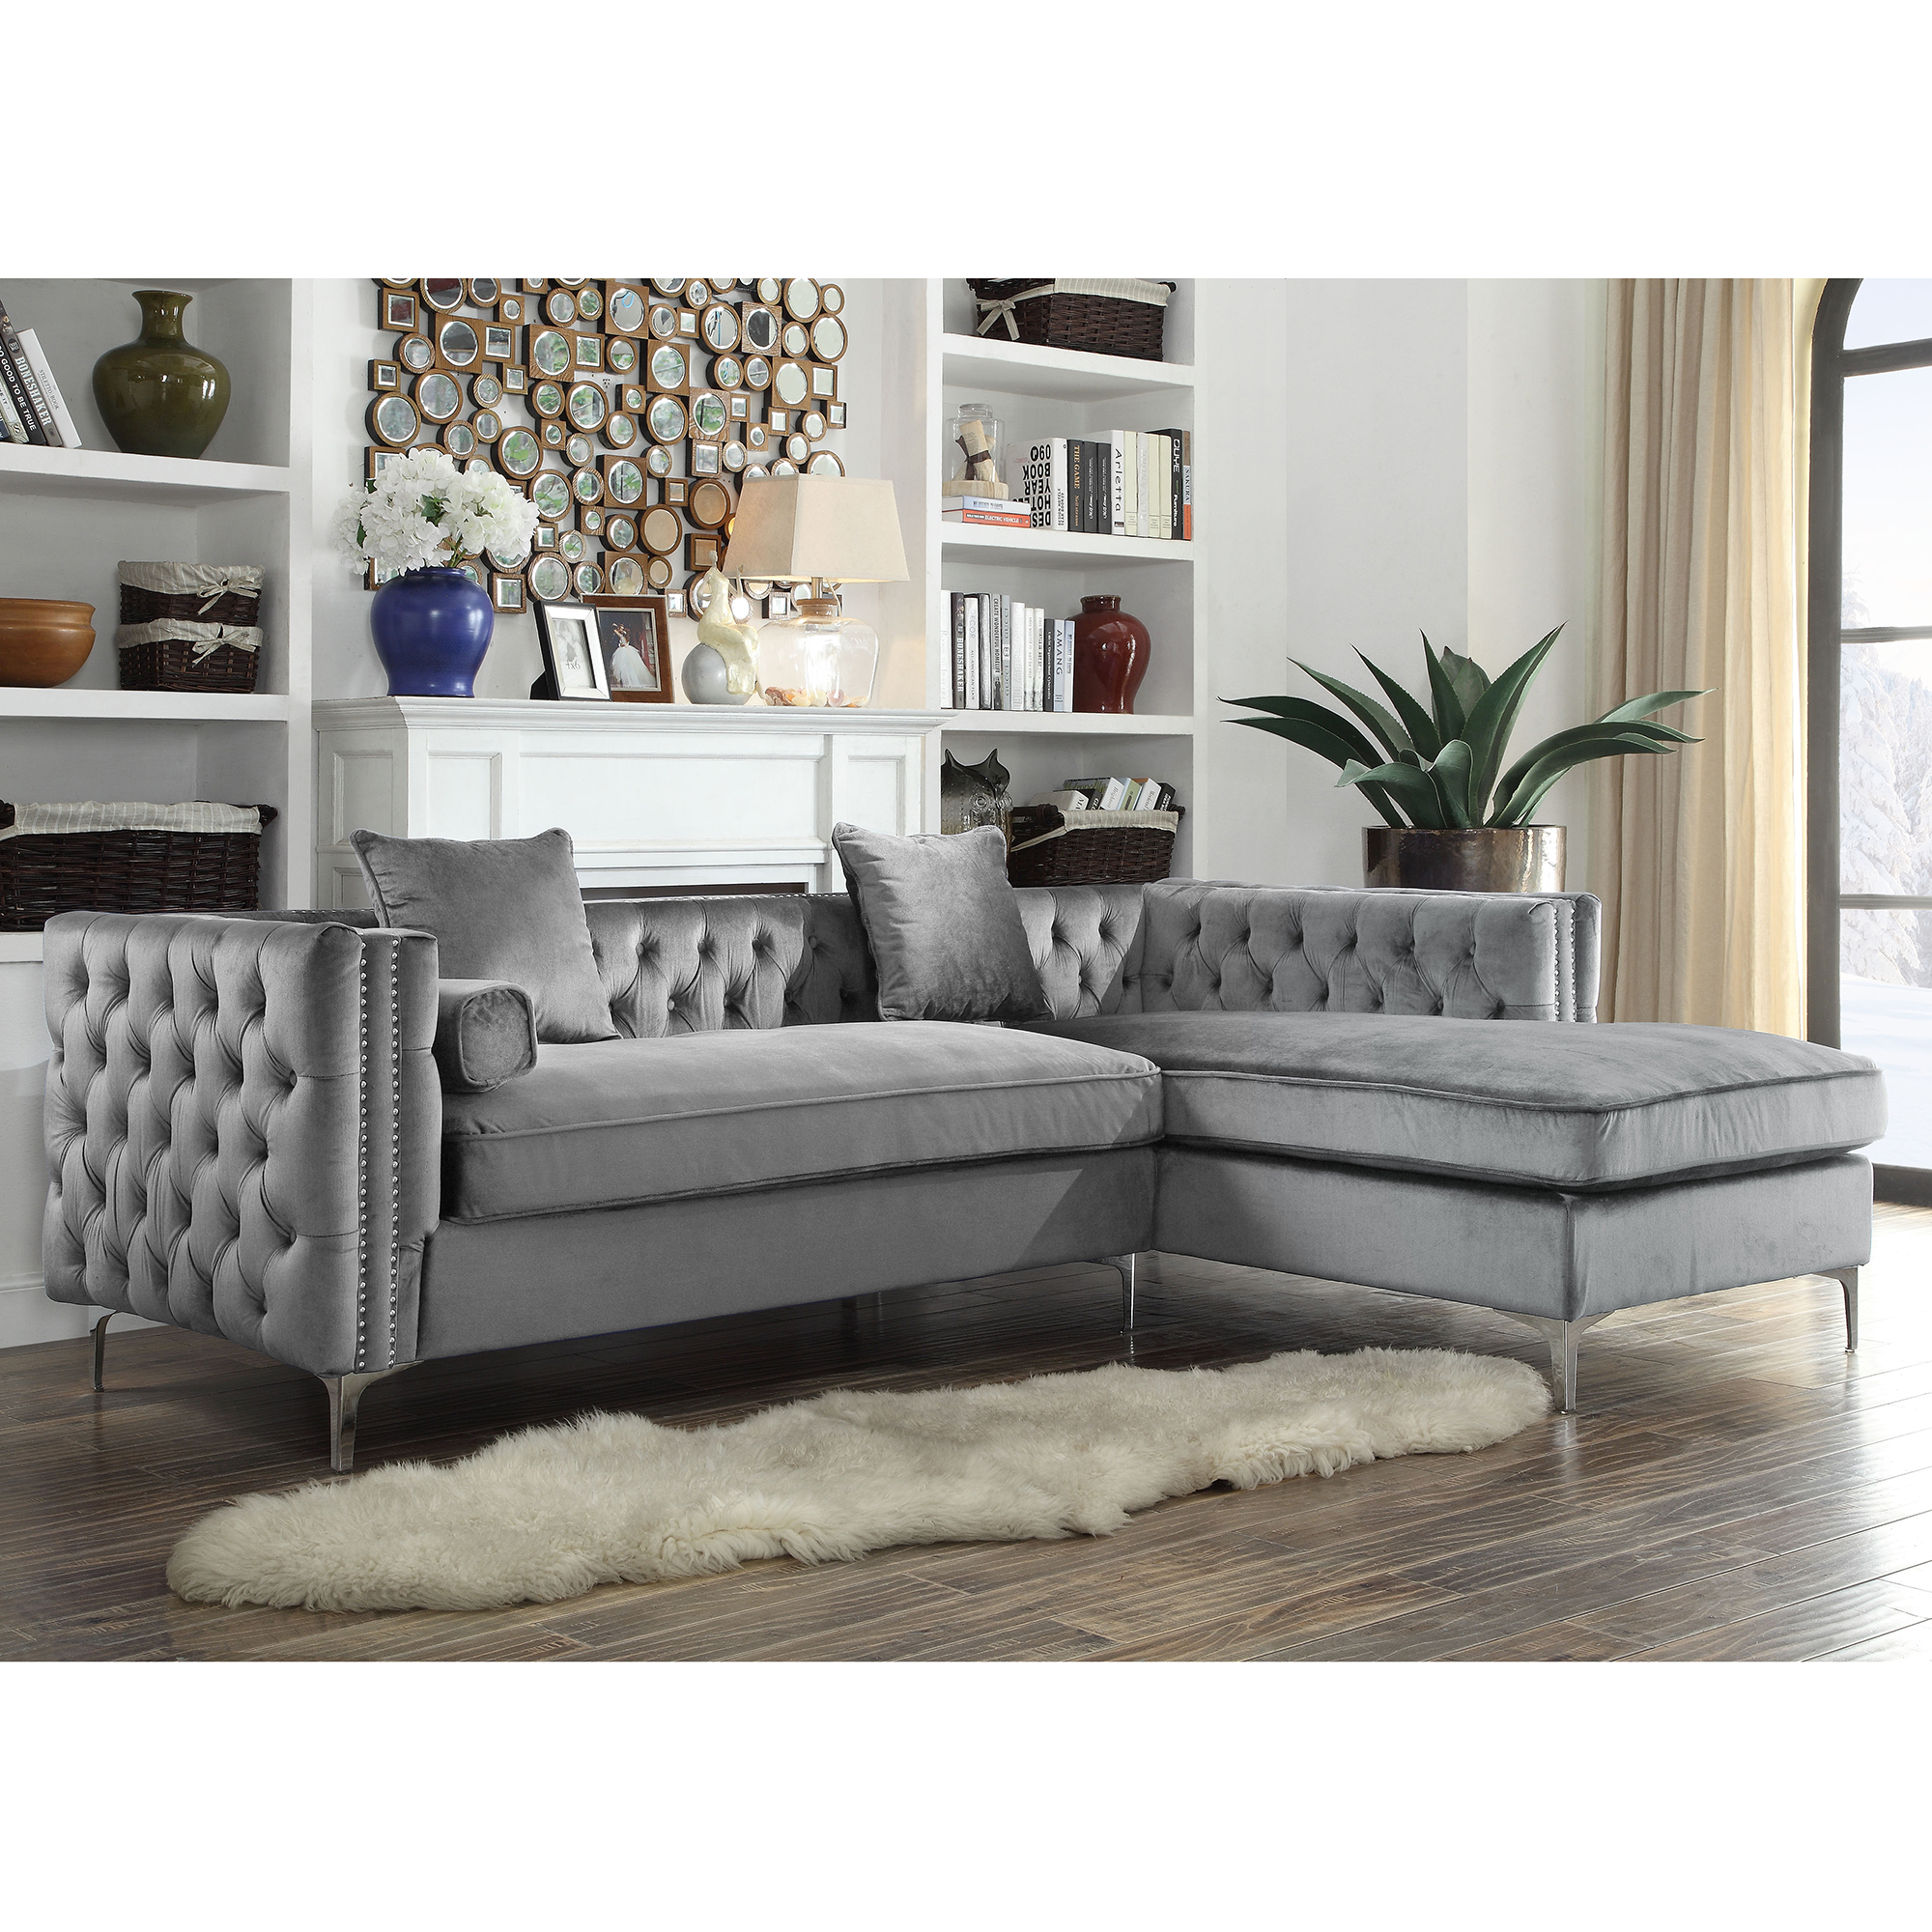 chaise table grey purple carpet pillows sofas dark recrangle and sofa velvet deep floral furniture wooden sectional plus brown with removable red on ottoman extra amazing couch storage